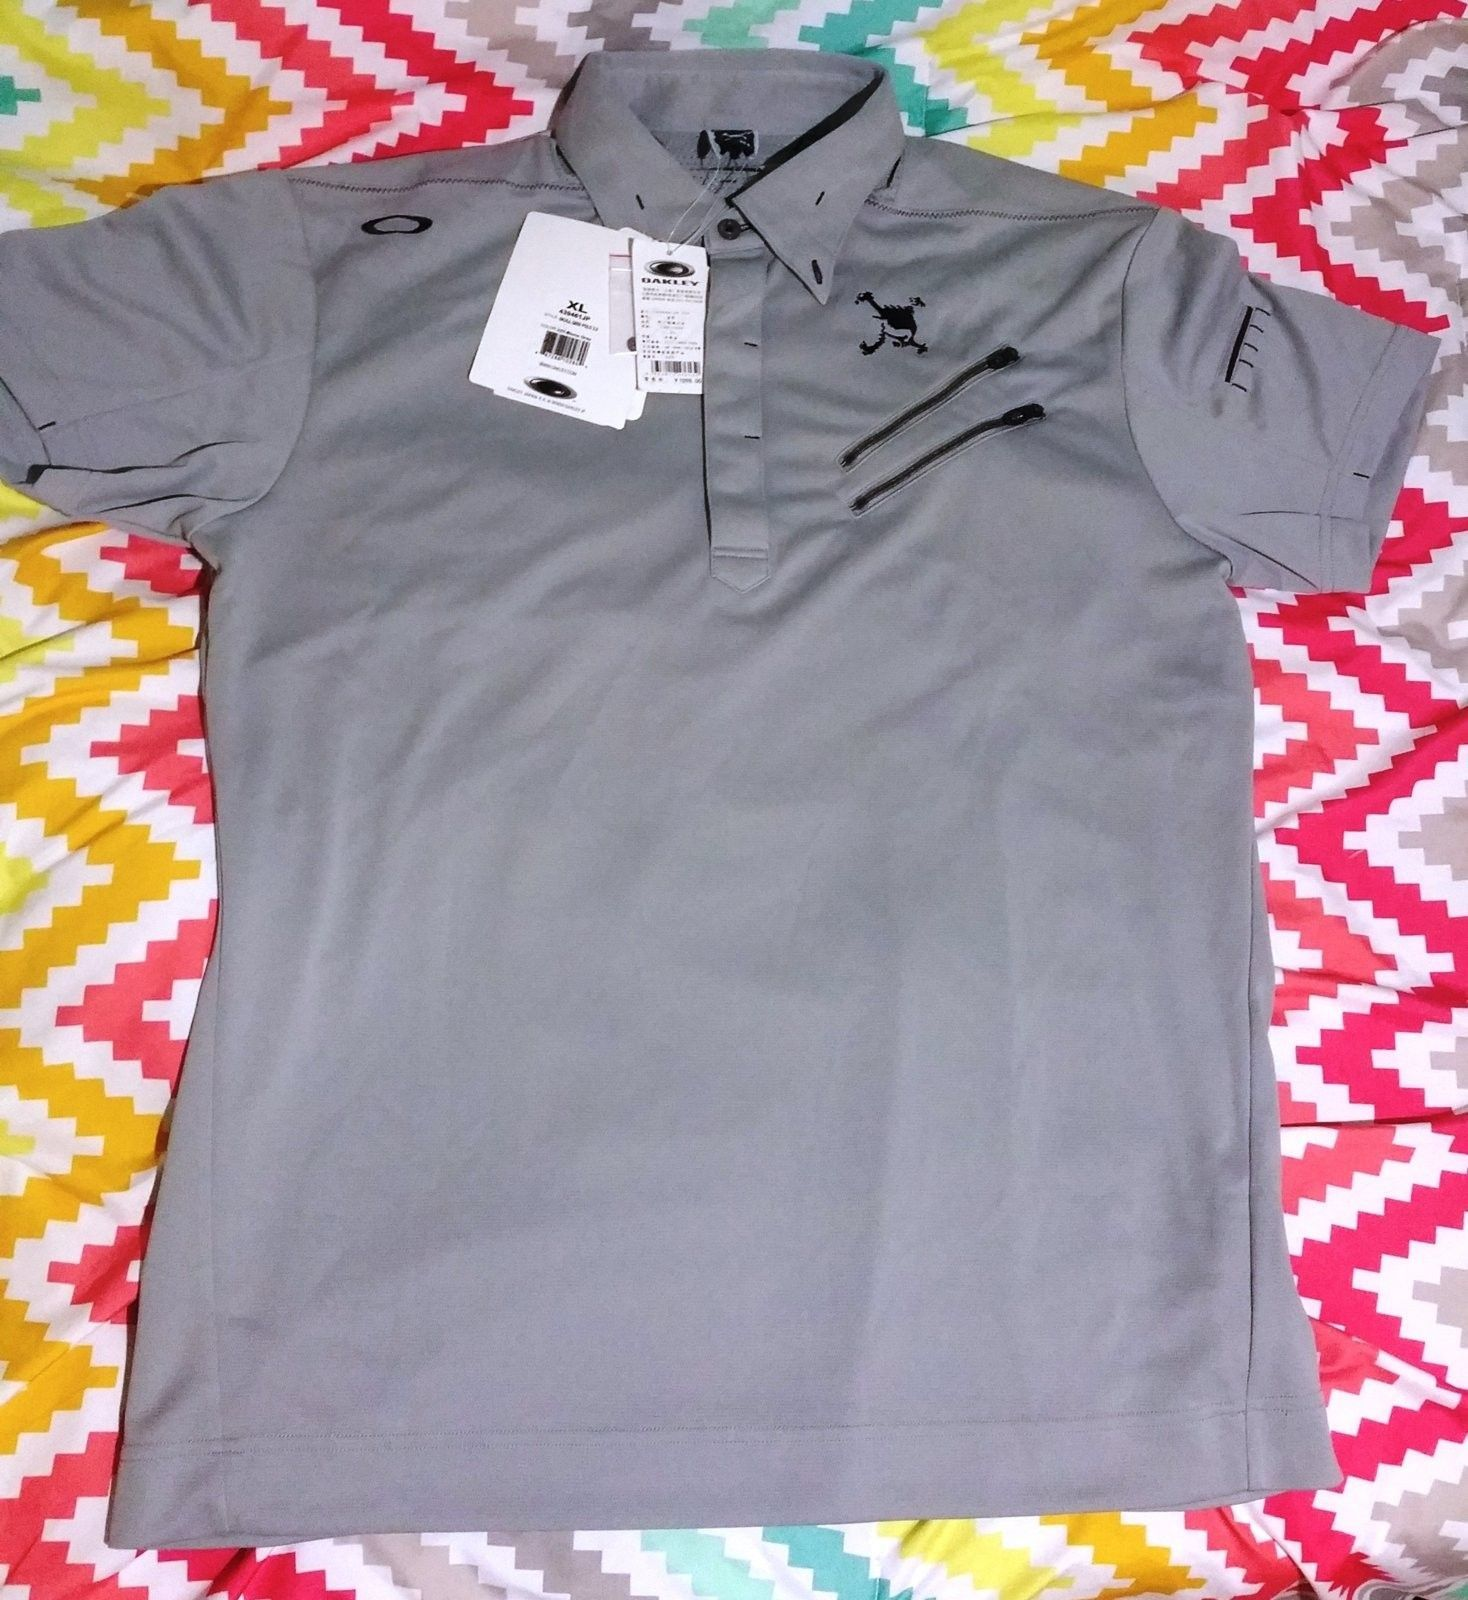 OAKLEY skull polo shirt - 20160706_211643.jpg